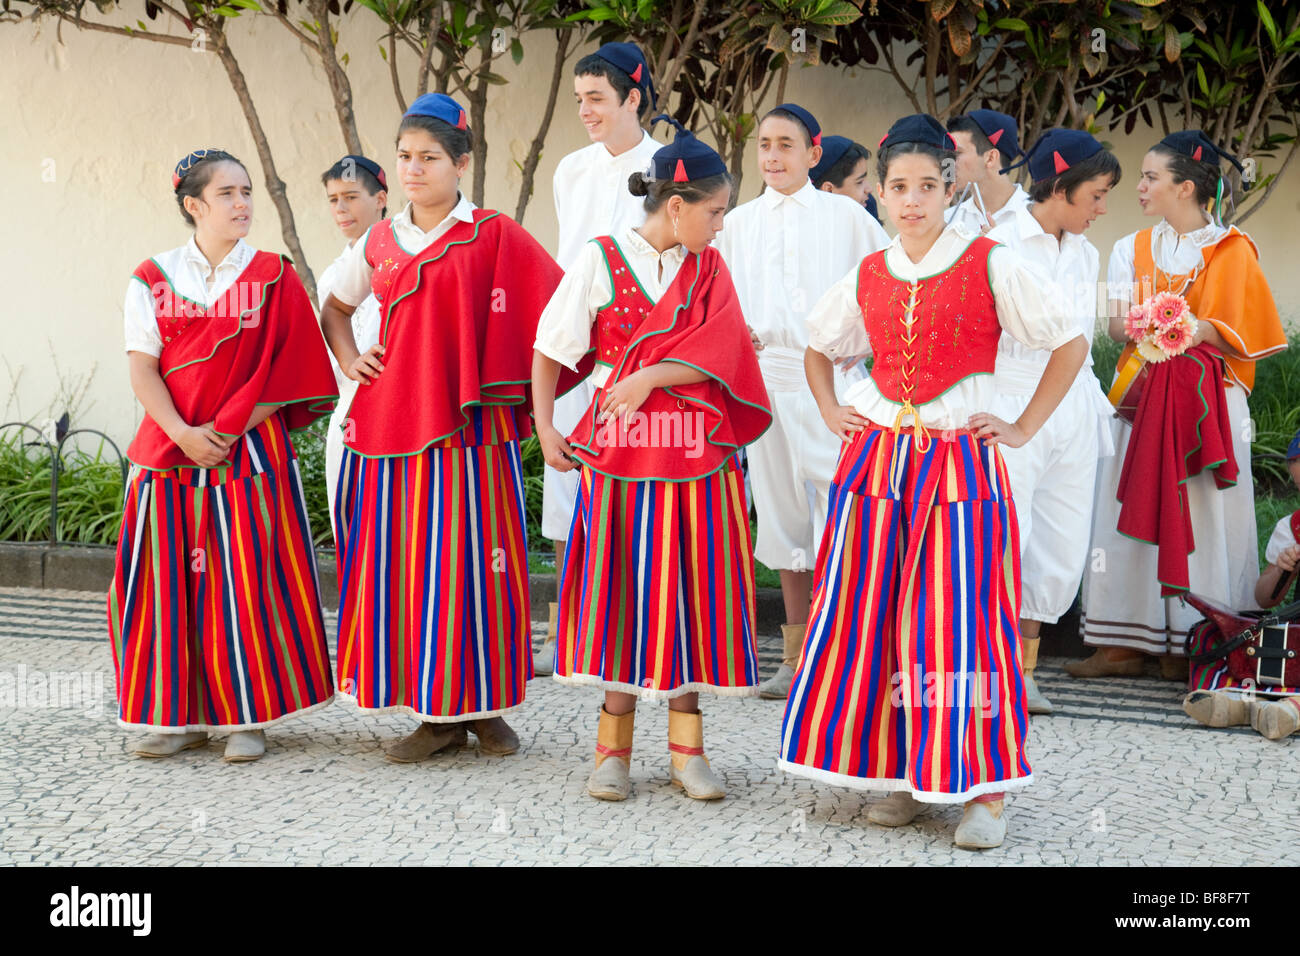 Madeiran children in traditional costume playing musical instruments and dancing, Funchal, madeira - Stock Image